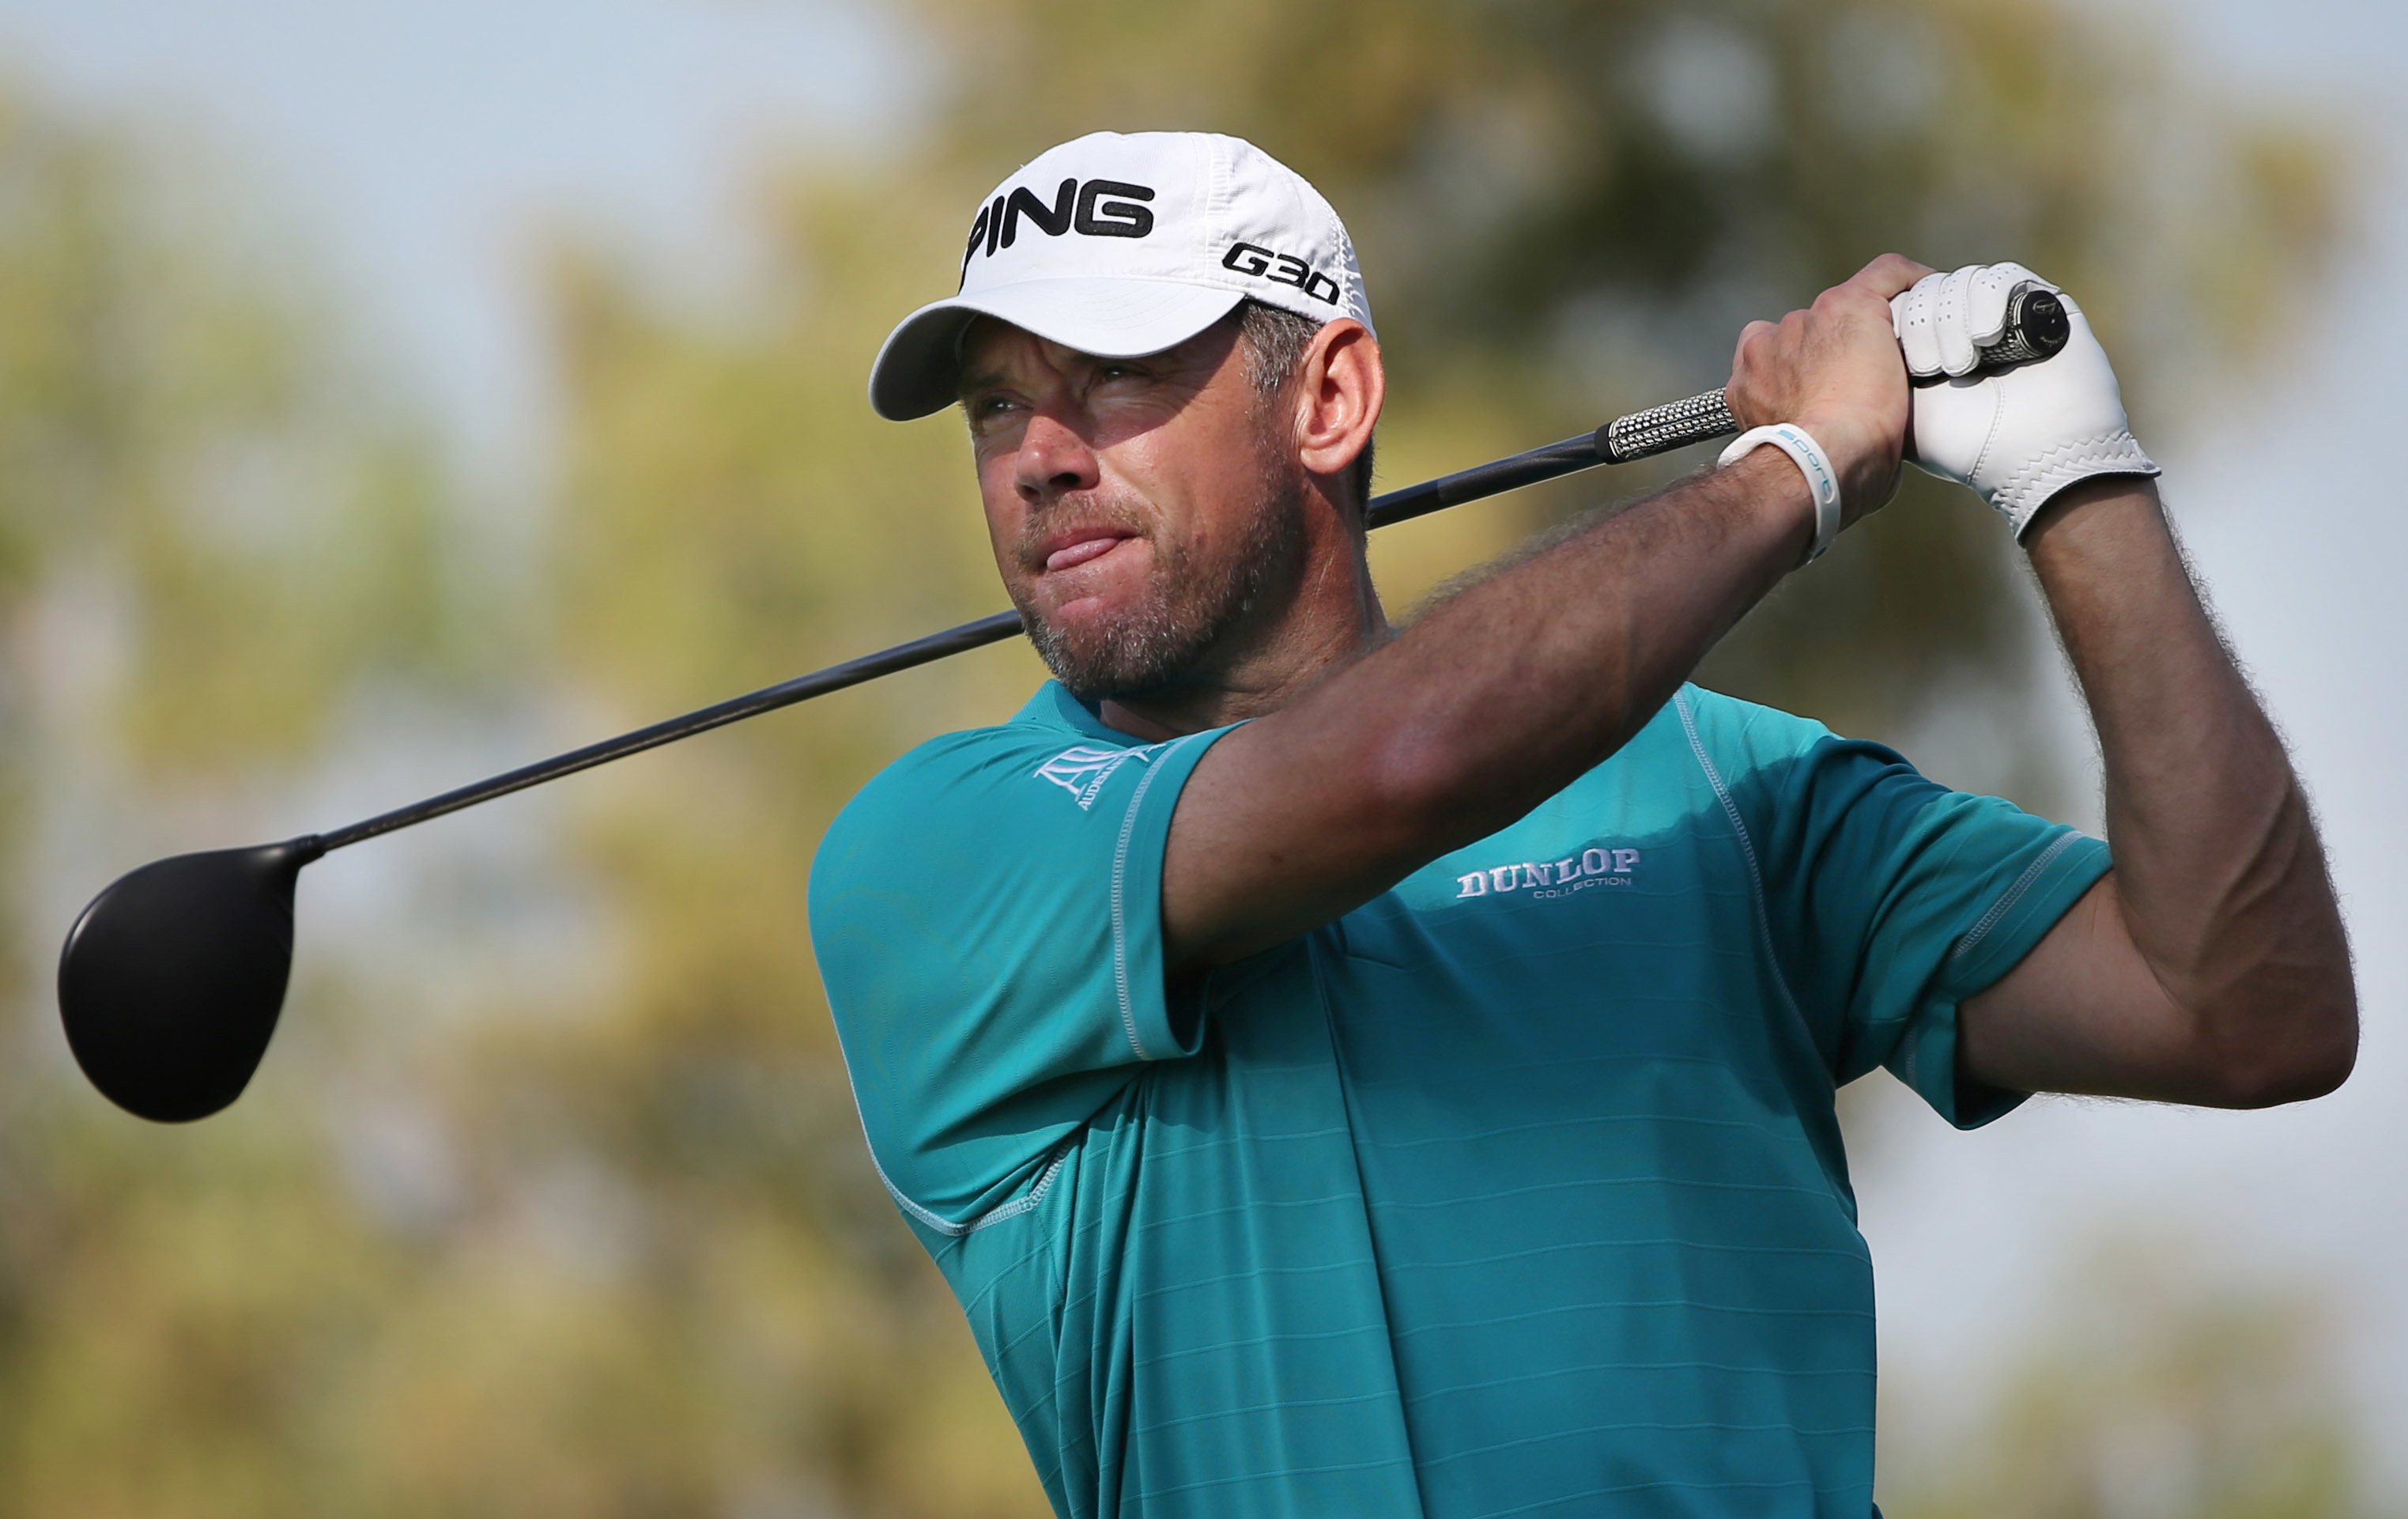 FILE - In this Nov. 19, 2015, file photo, Lee Westwood of England tees off on the second hole during the round one of DP World Tour Championship golf tournament in Dubai, United Arab Emirates. Lee Westwood, Martin Kaymer and Thomas Pieters will fill out t